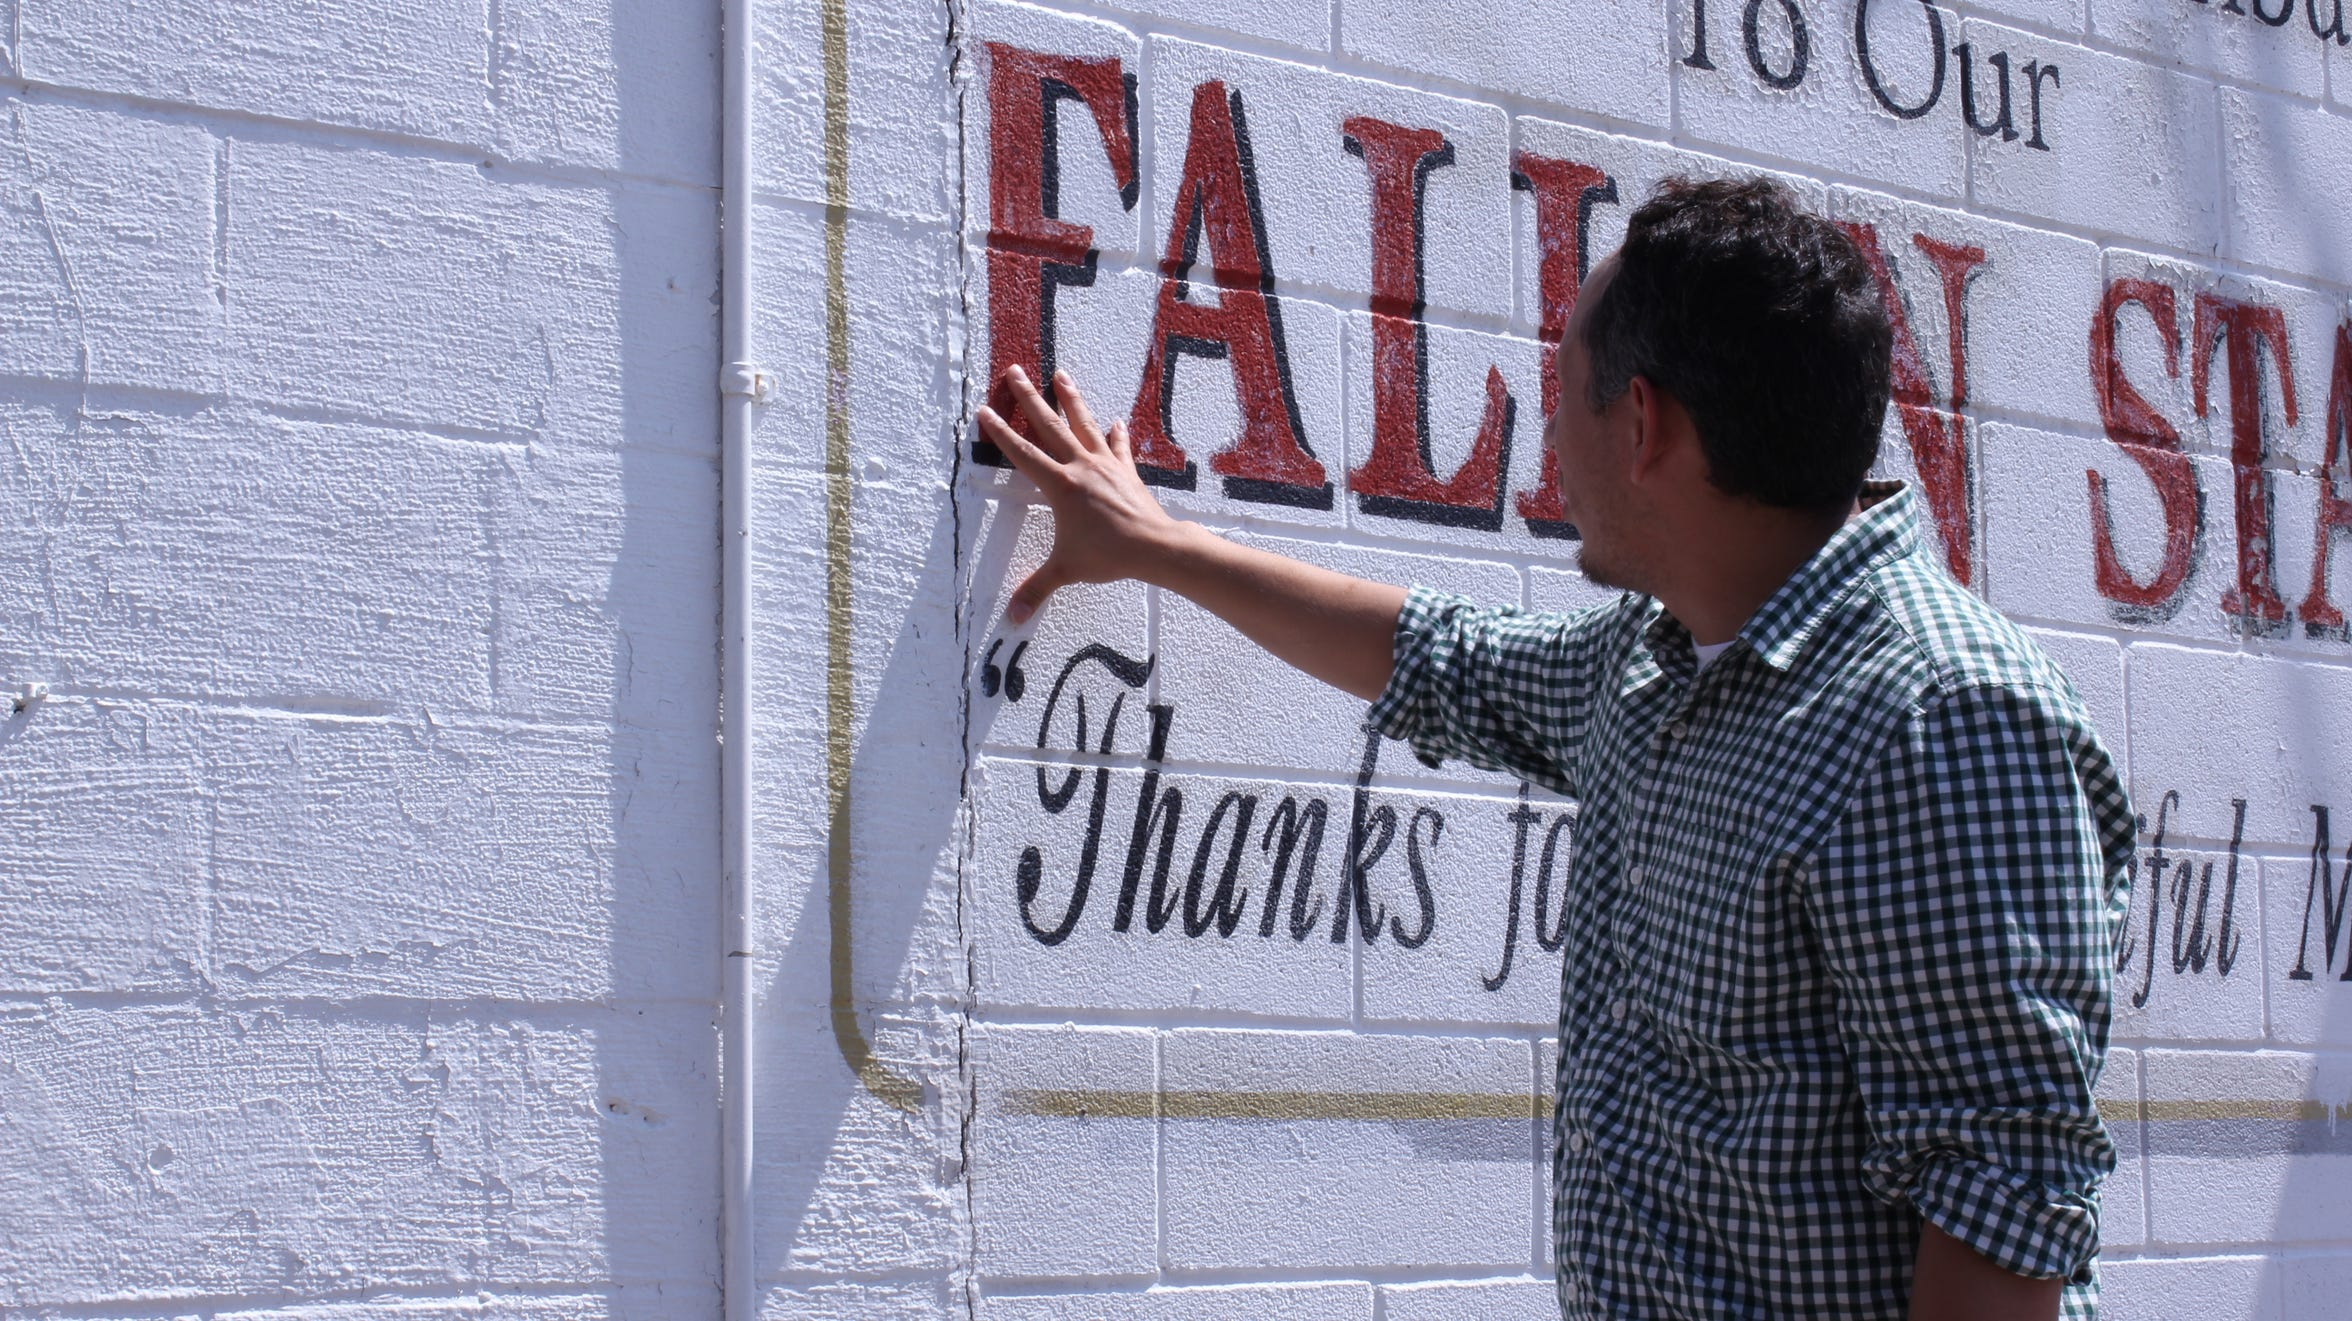 Eric Tunchez shows the wear and tear of the Selena mural located in the Molina neighborhood where she grew up.